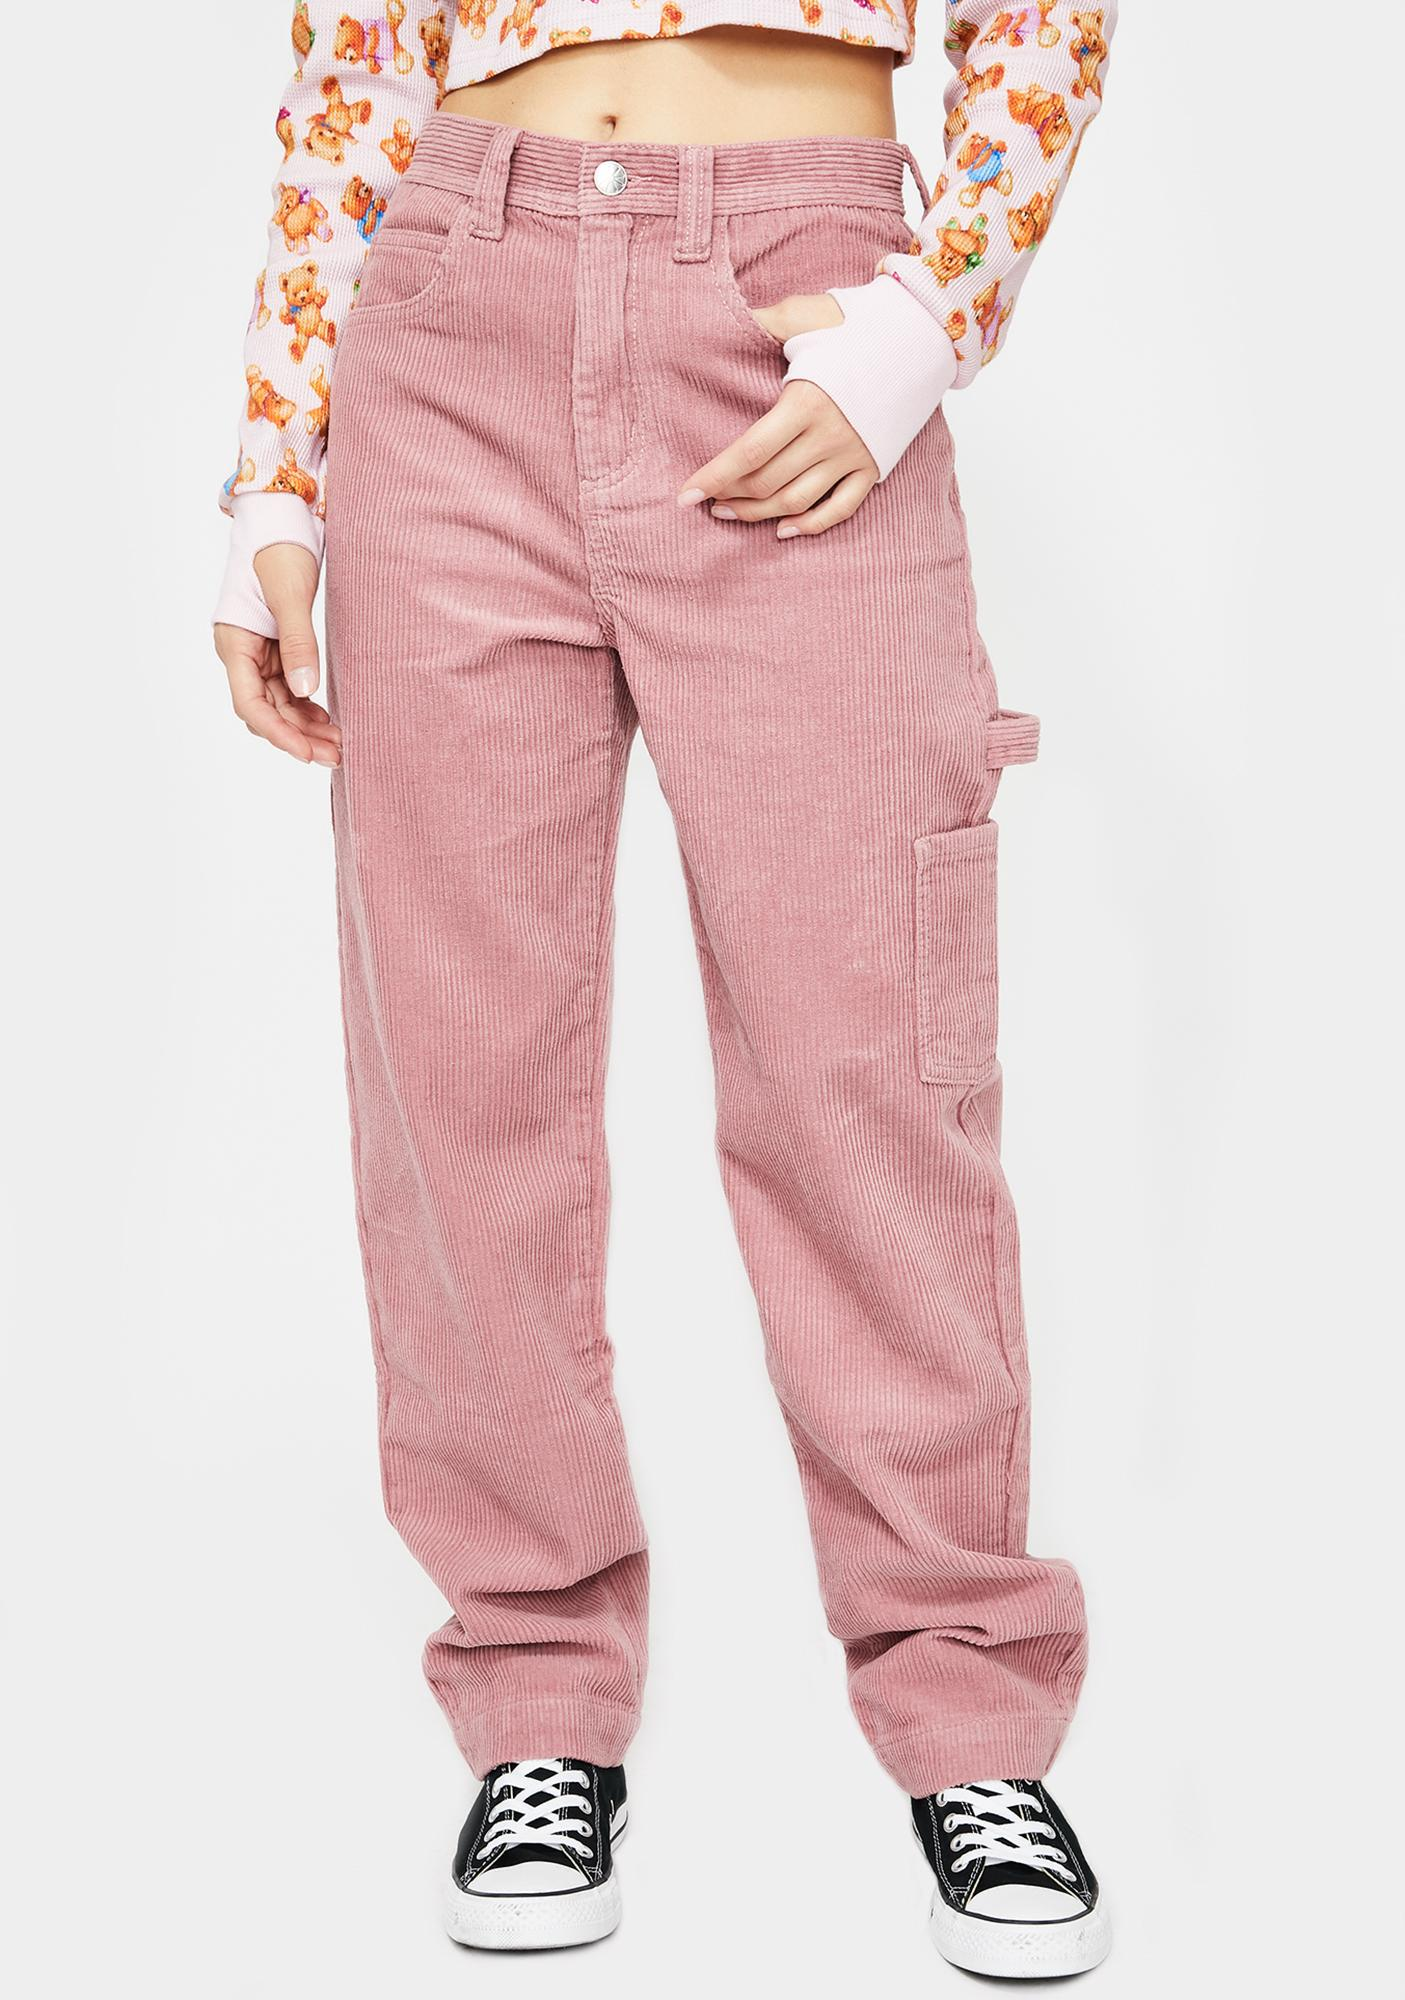 dELiA*s by Dolls Kill Totally Board Cargo Pants